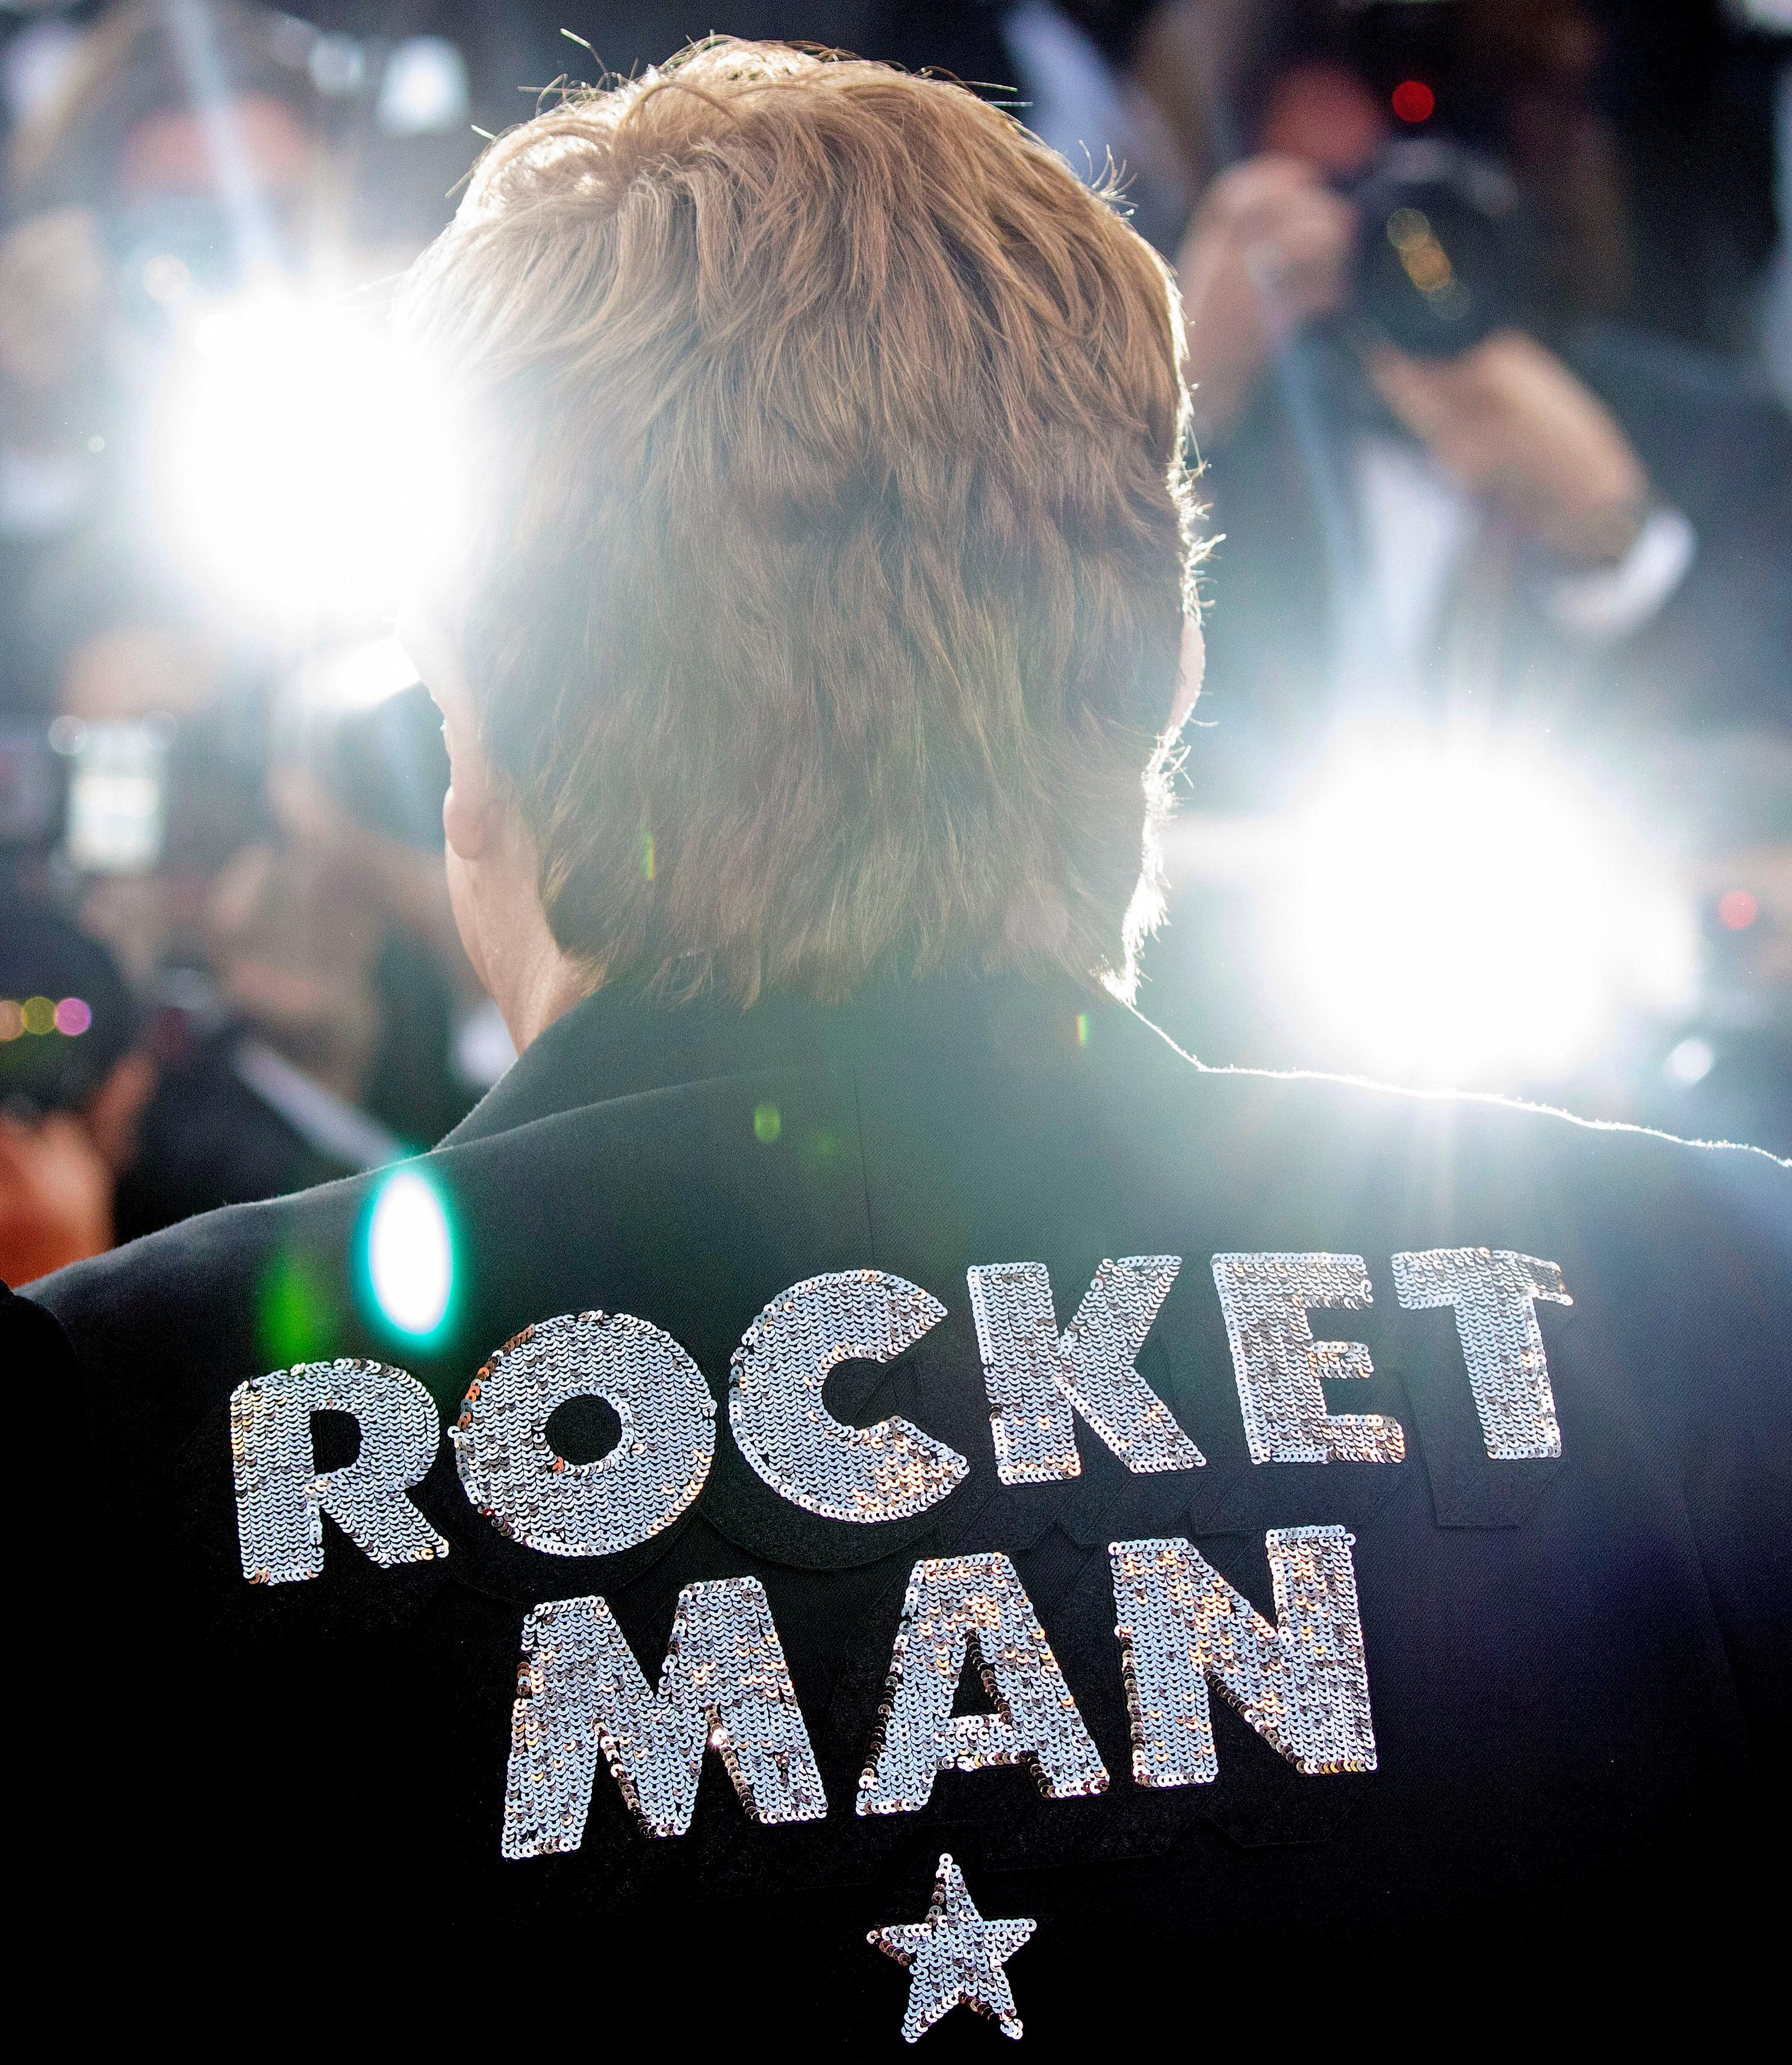 Musician Elton John poses for photographers upon his arrival at the premiere of the film 'Rocketman' at the 72nd international film festival, Cannes, southern France, Thursday, May 16, 2019. (Photo by Vianney Le Caer/Invision/AP)